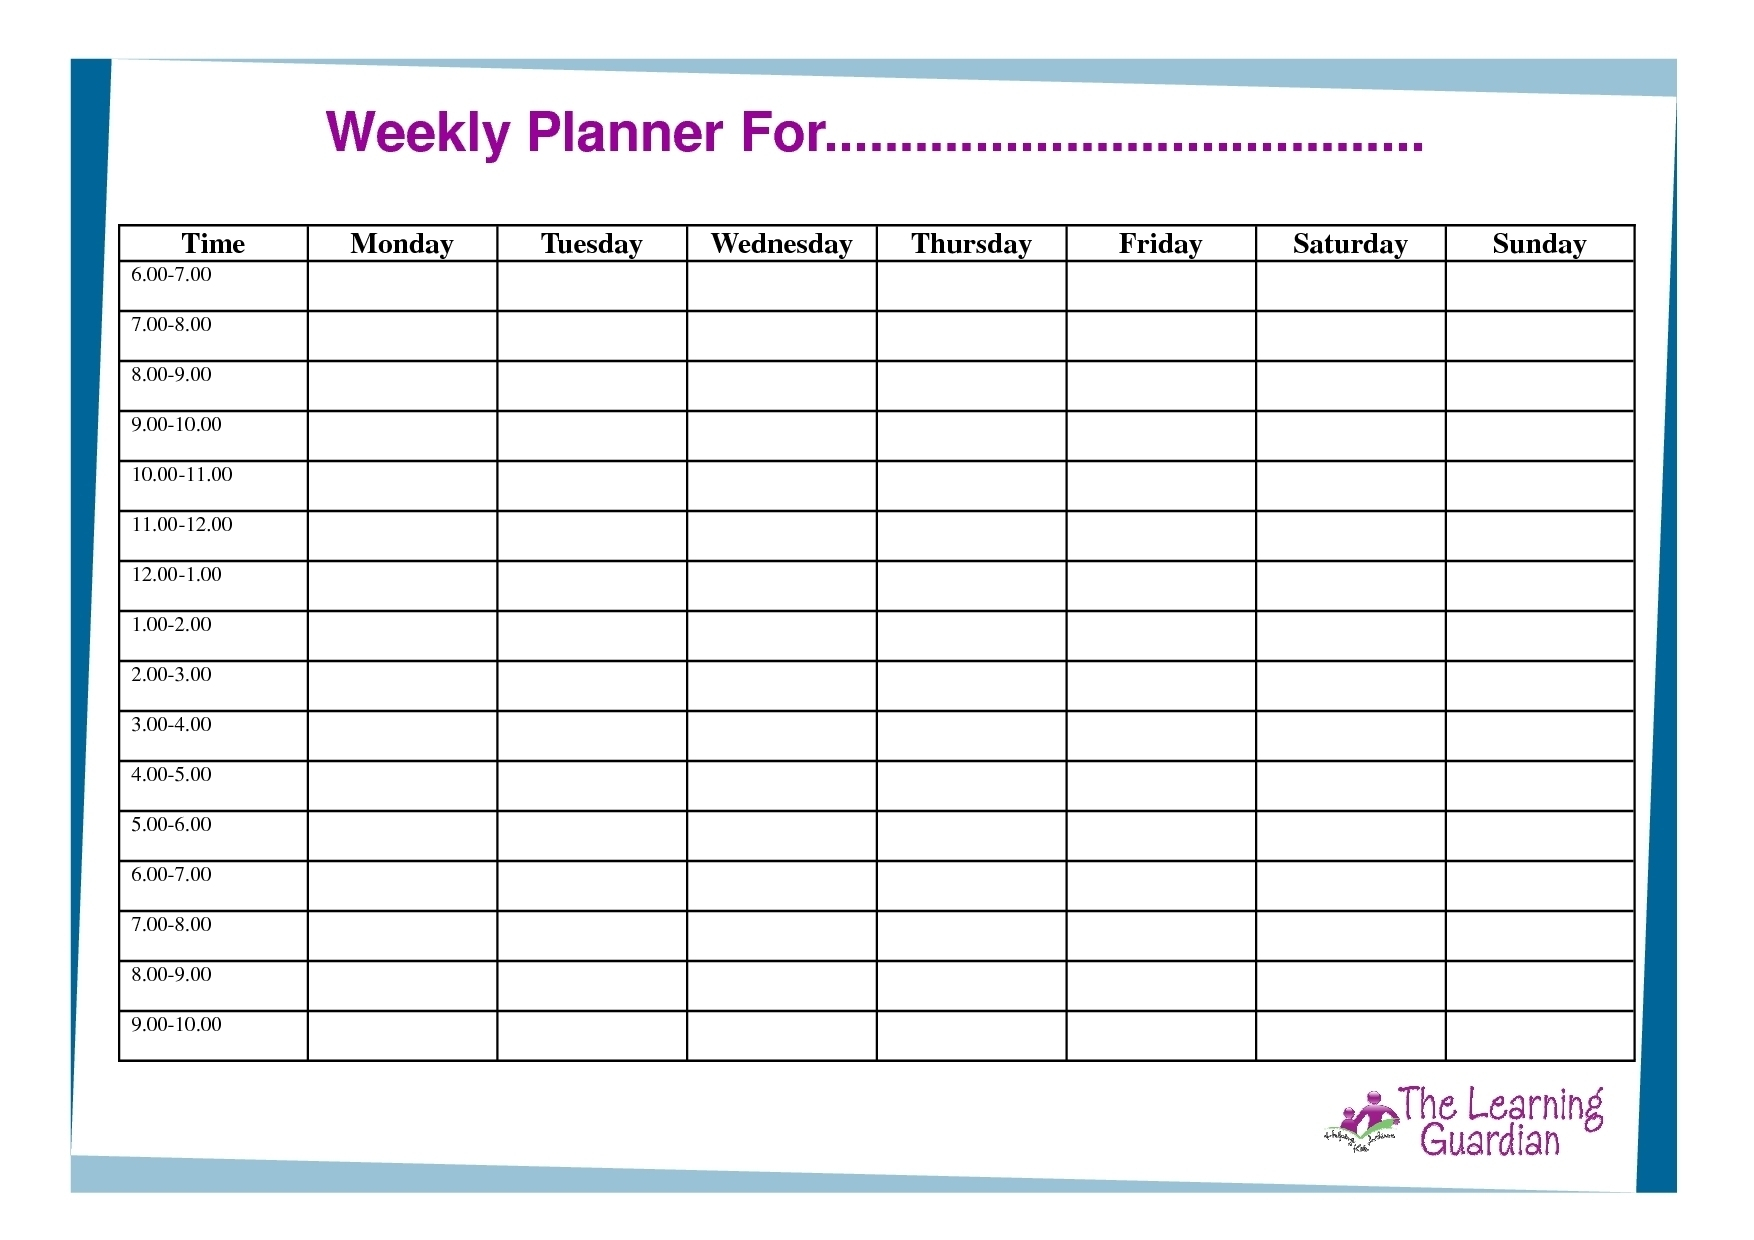 Appointment Schedule Template Sunday To Saturday intended for Sunday Saturday Calendar